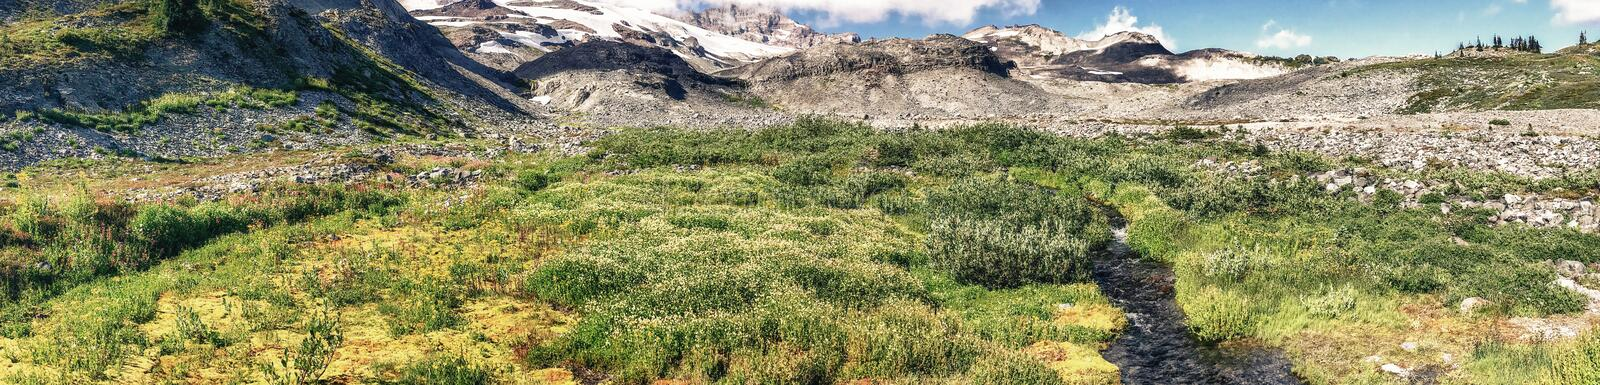 Panoramic view of Mt Rainier landscape on a beautiful summer day royalty free stock photos